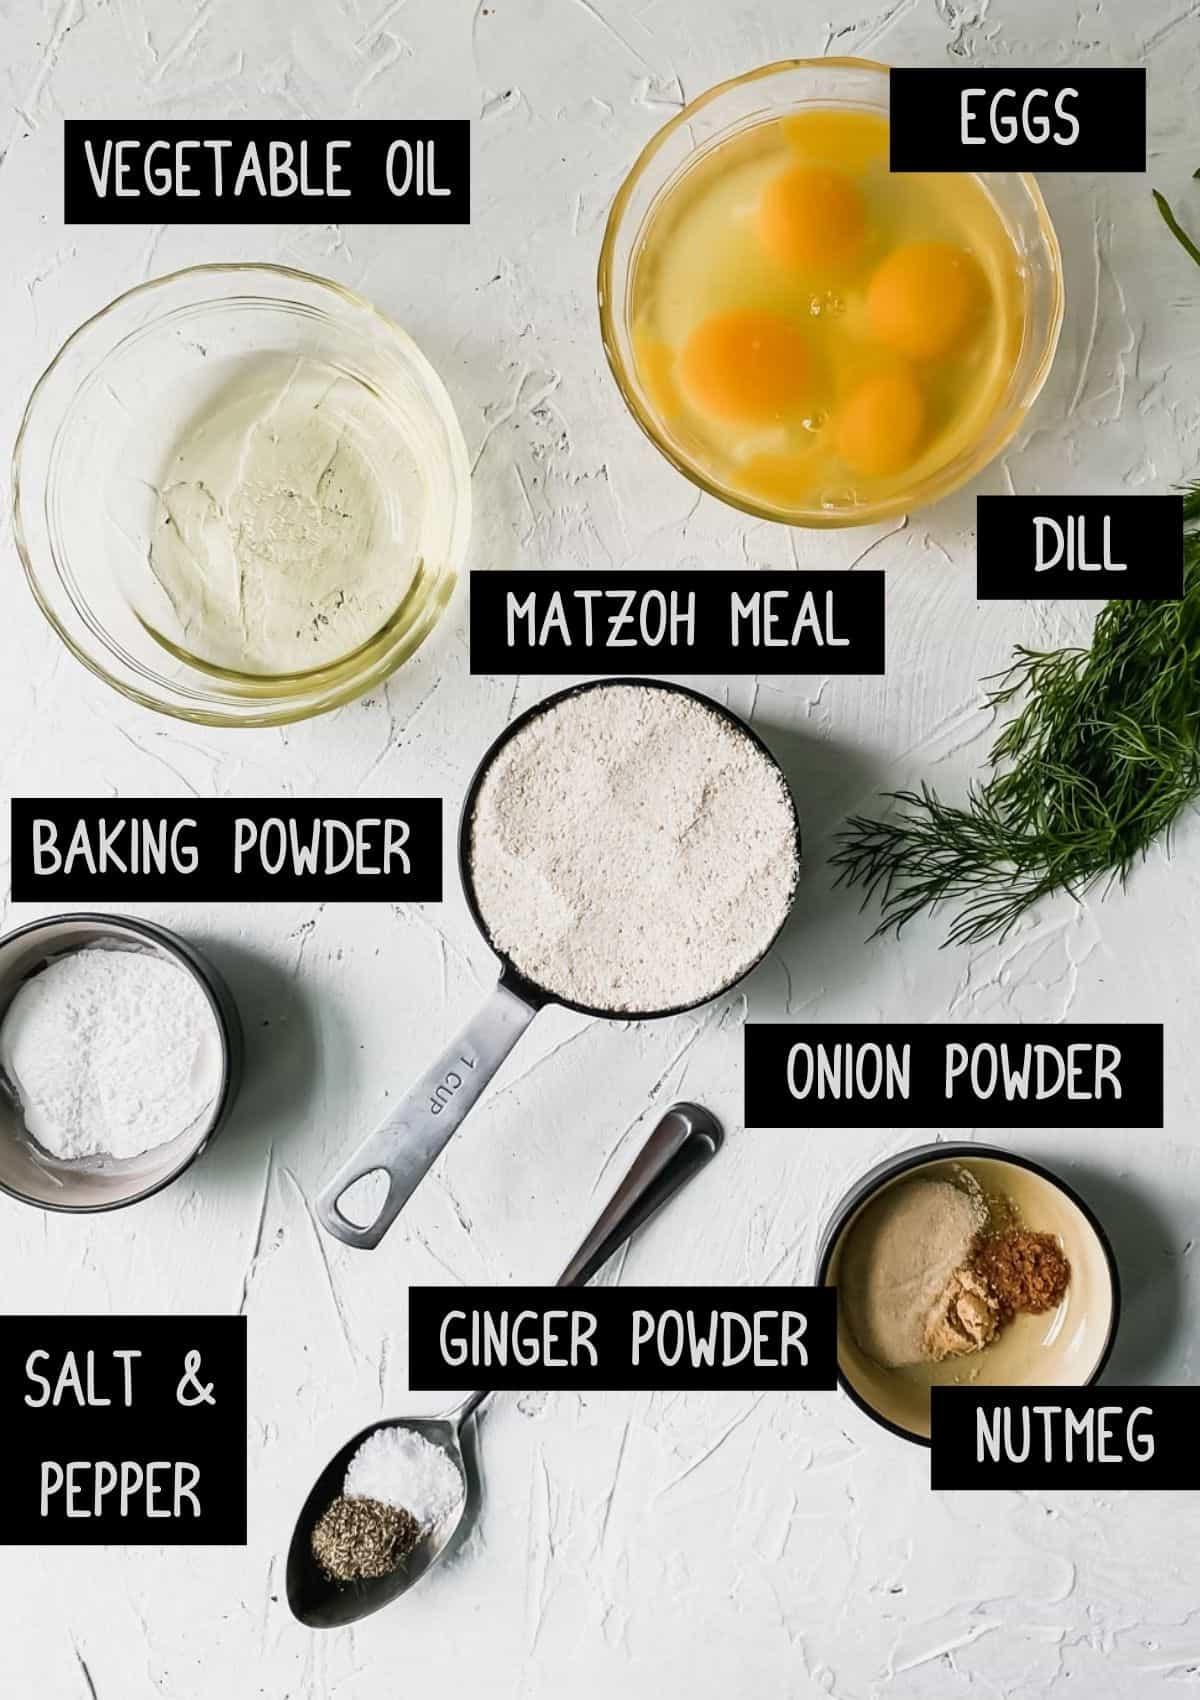 Ingredients for Matzo Balls (see recipe for details)